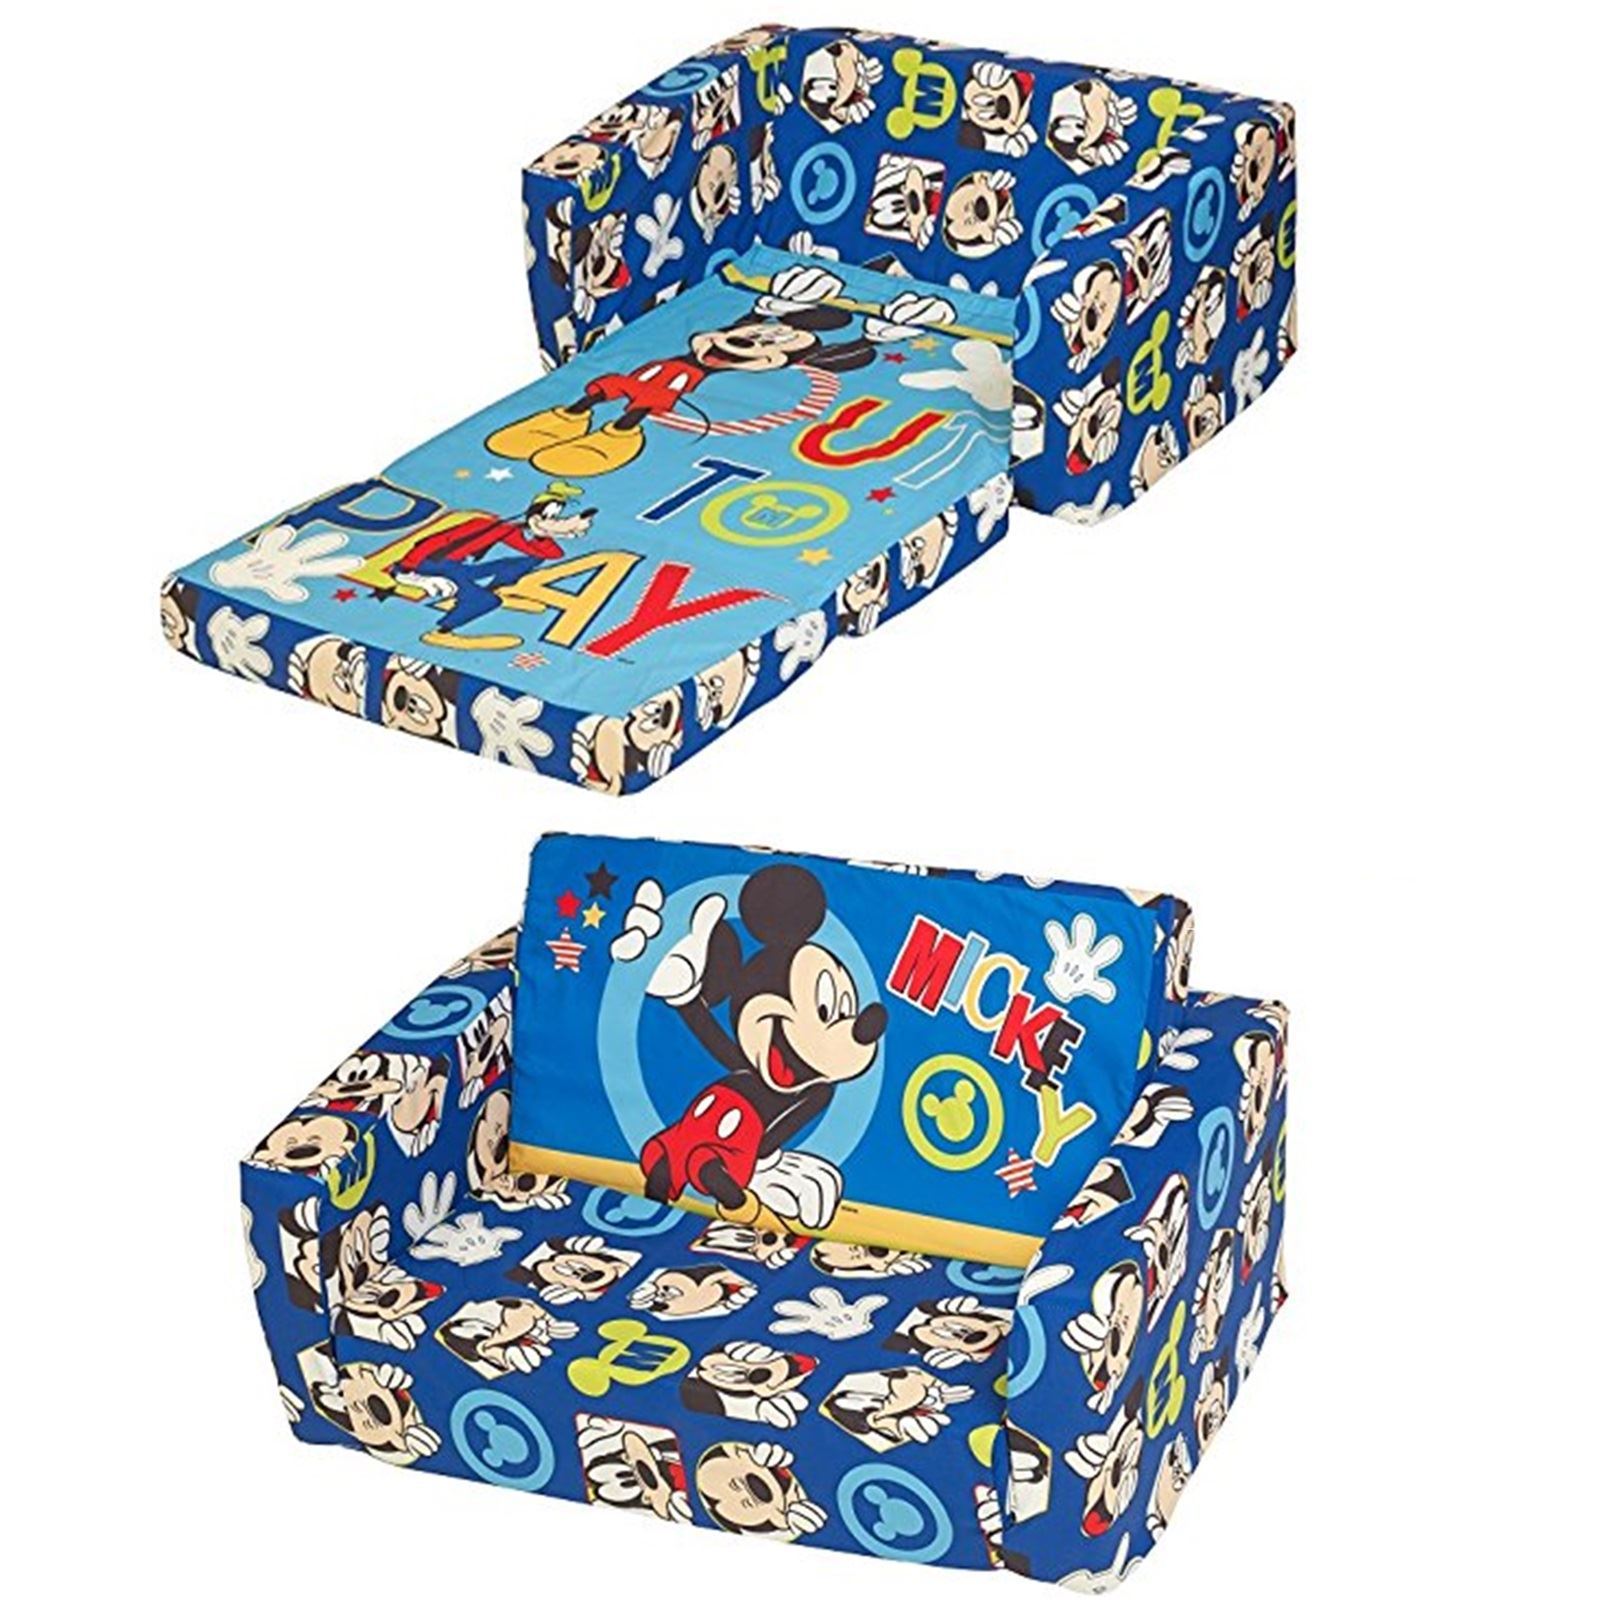 disney princess flip out sofa design sofabord childrens double foam settee kids